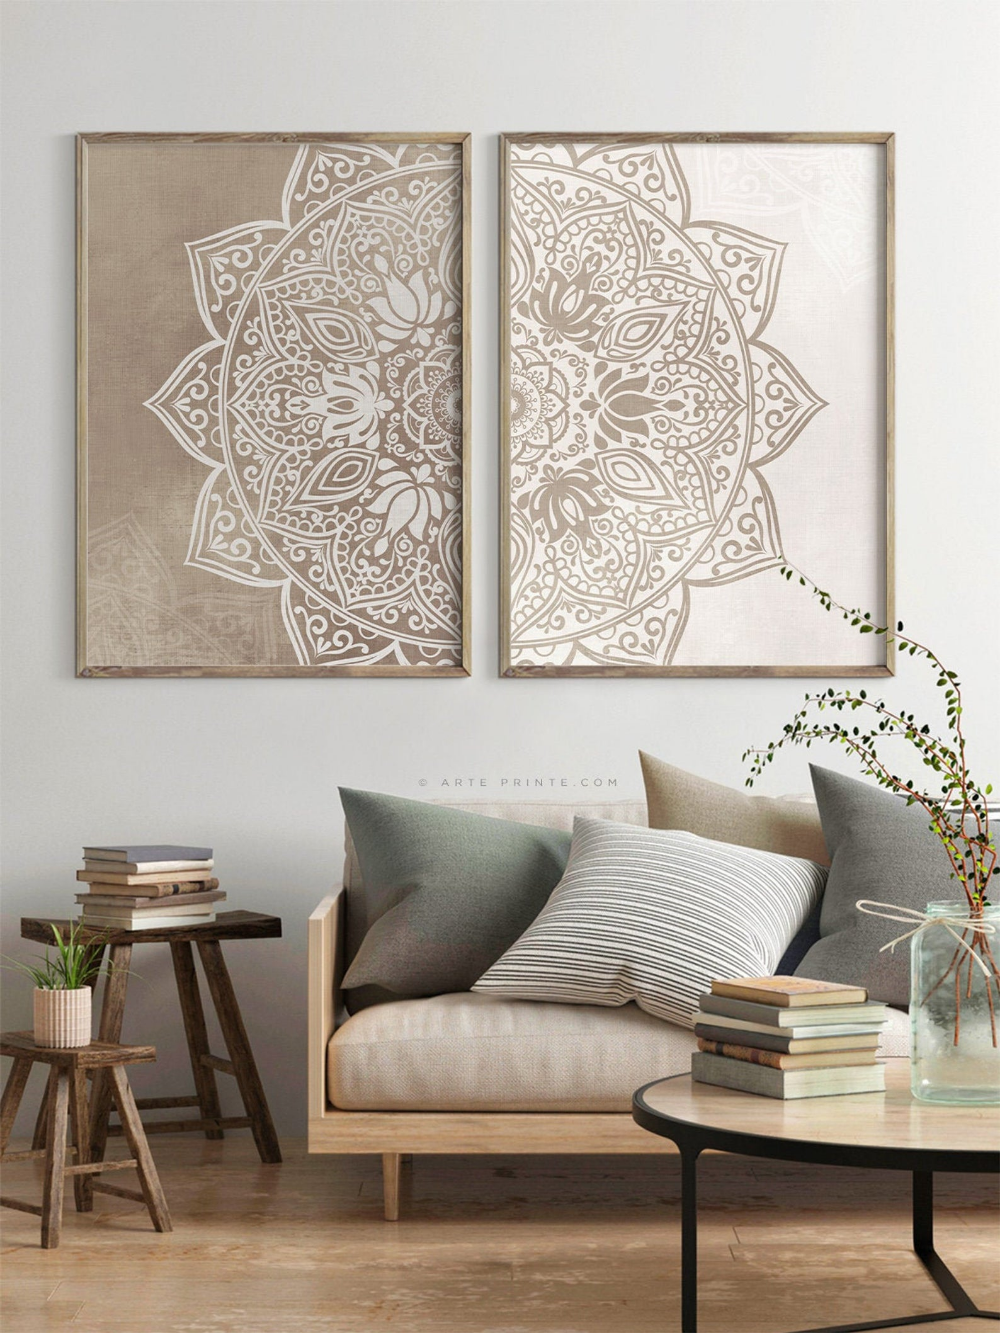 Photo of Boho Wall Decor Living Room Set of 2 Mandala Wall Art Beige Boho Mandala Bedroom Wall Art set of 2 Prints, Large Wall Art, Girl Room Decor